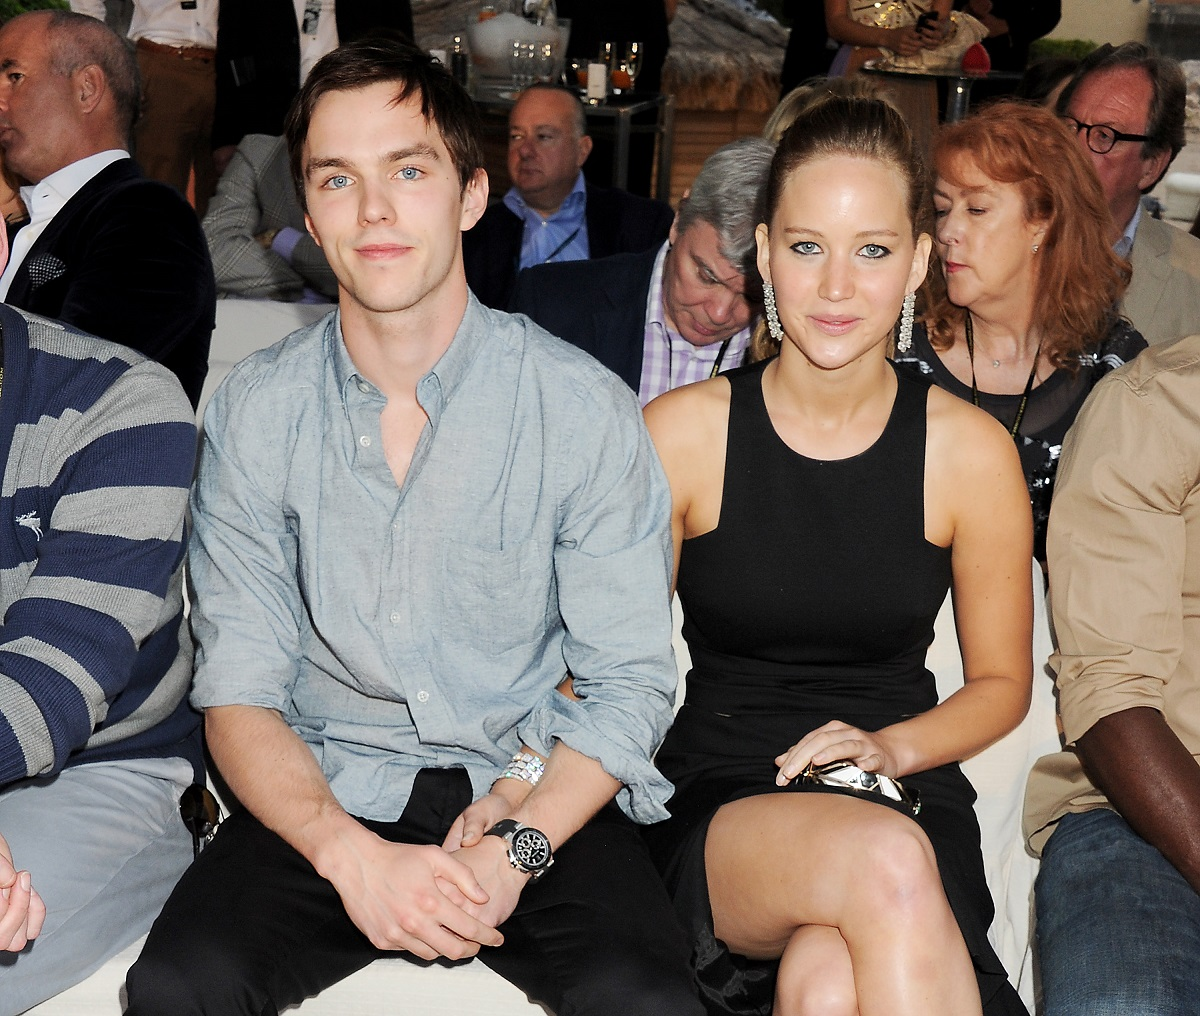 Nicholas Hoult (L) and Jennifer Lawrence on May 25, 2012, in Monaco.